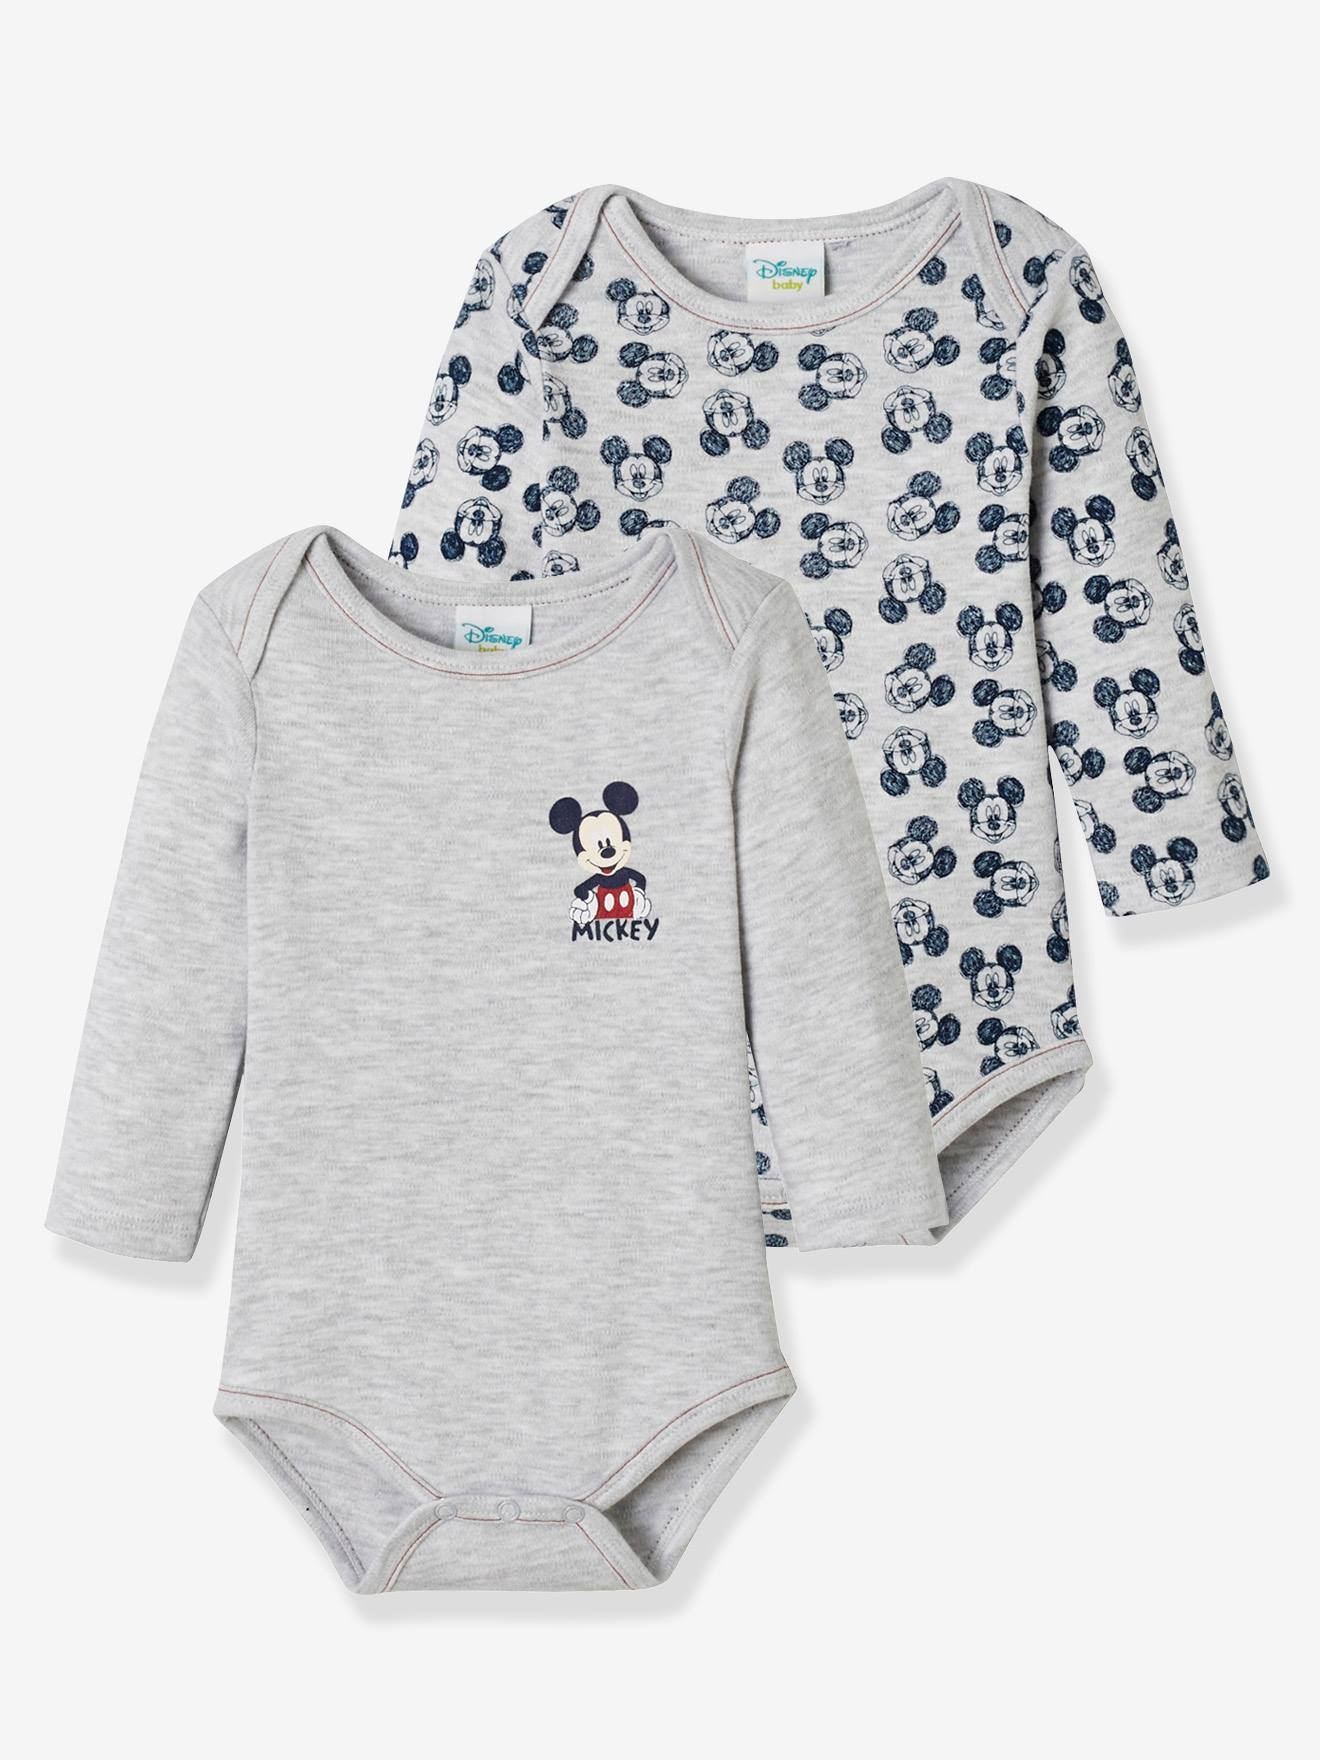 Disney Baby Boys/' Mickey Mouse 3 Pack Bodysuits Size 12M 18M 24M